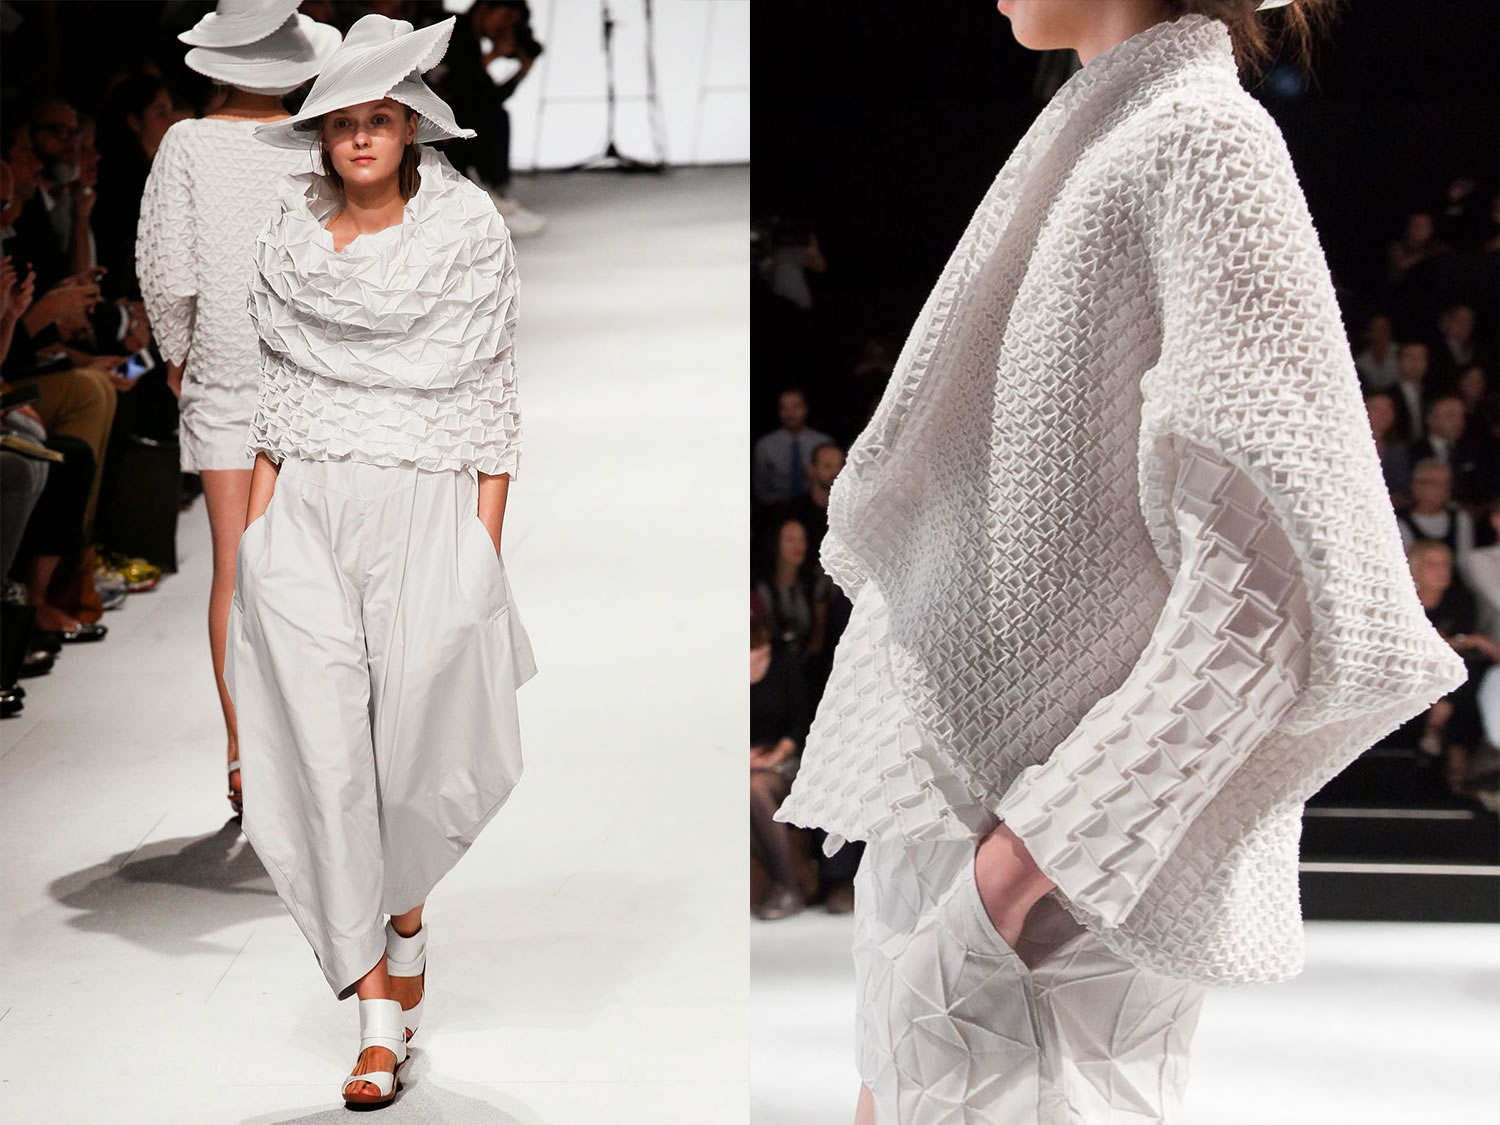 white clothing, with patterns and textures, by Issey Miyake